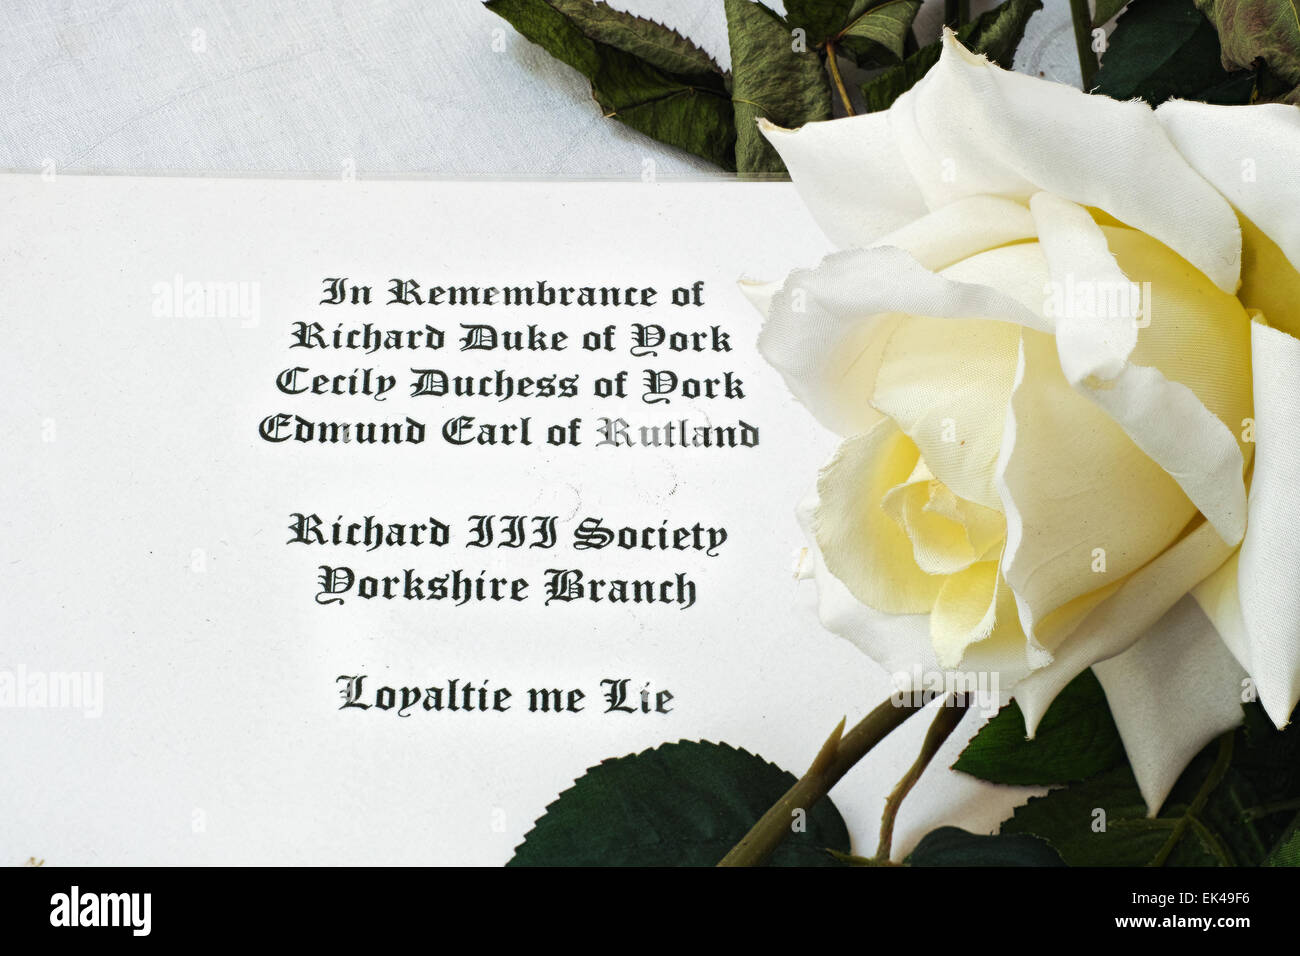 A white rose symbol of the house of york plantagenets claimants a white rose symbol of the house of york plantagenets claimants to the english throne inthe fifteenth century buycottarizona Choice Image